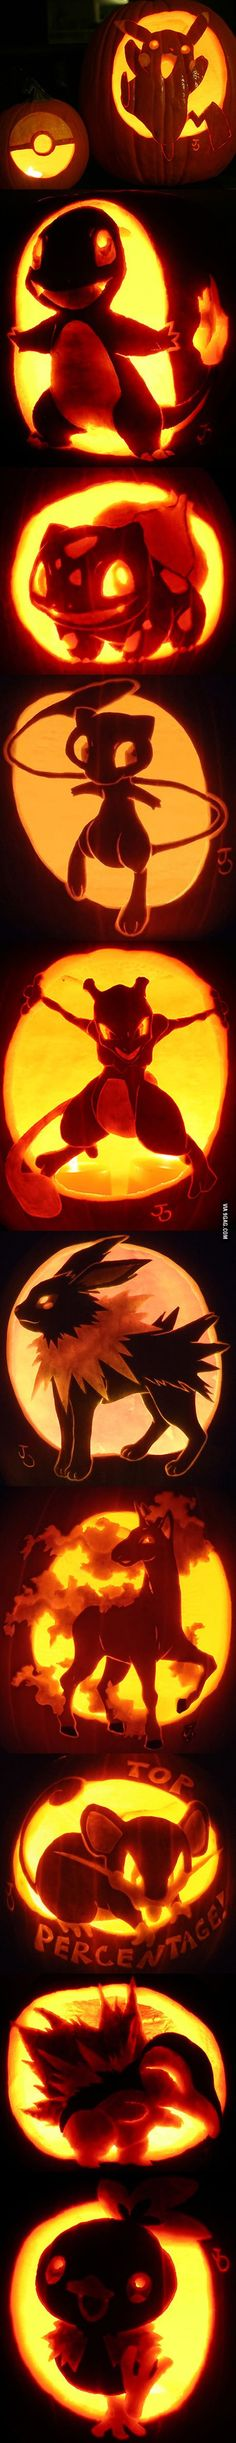 Pokemon Jack-O'-Lantern Pumpkin Art More